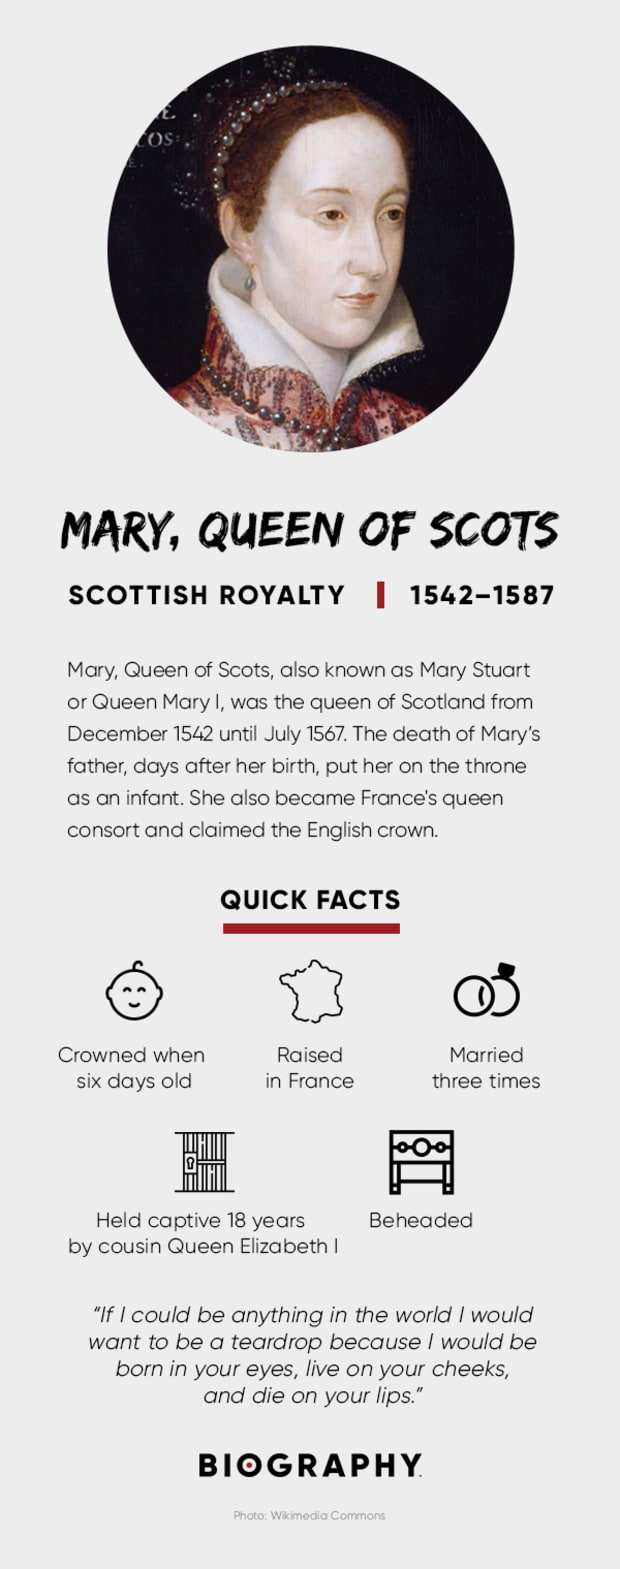 Mary, Queen of Scots - Family Tree, Reign & Death - Biography